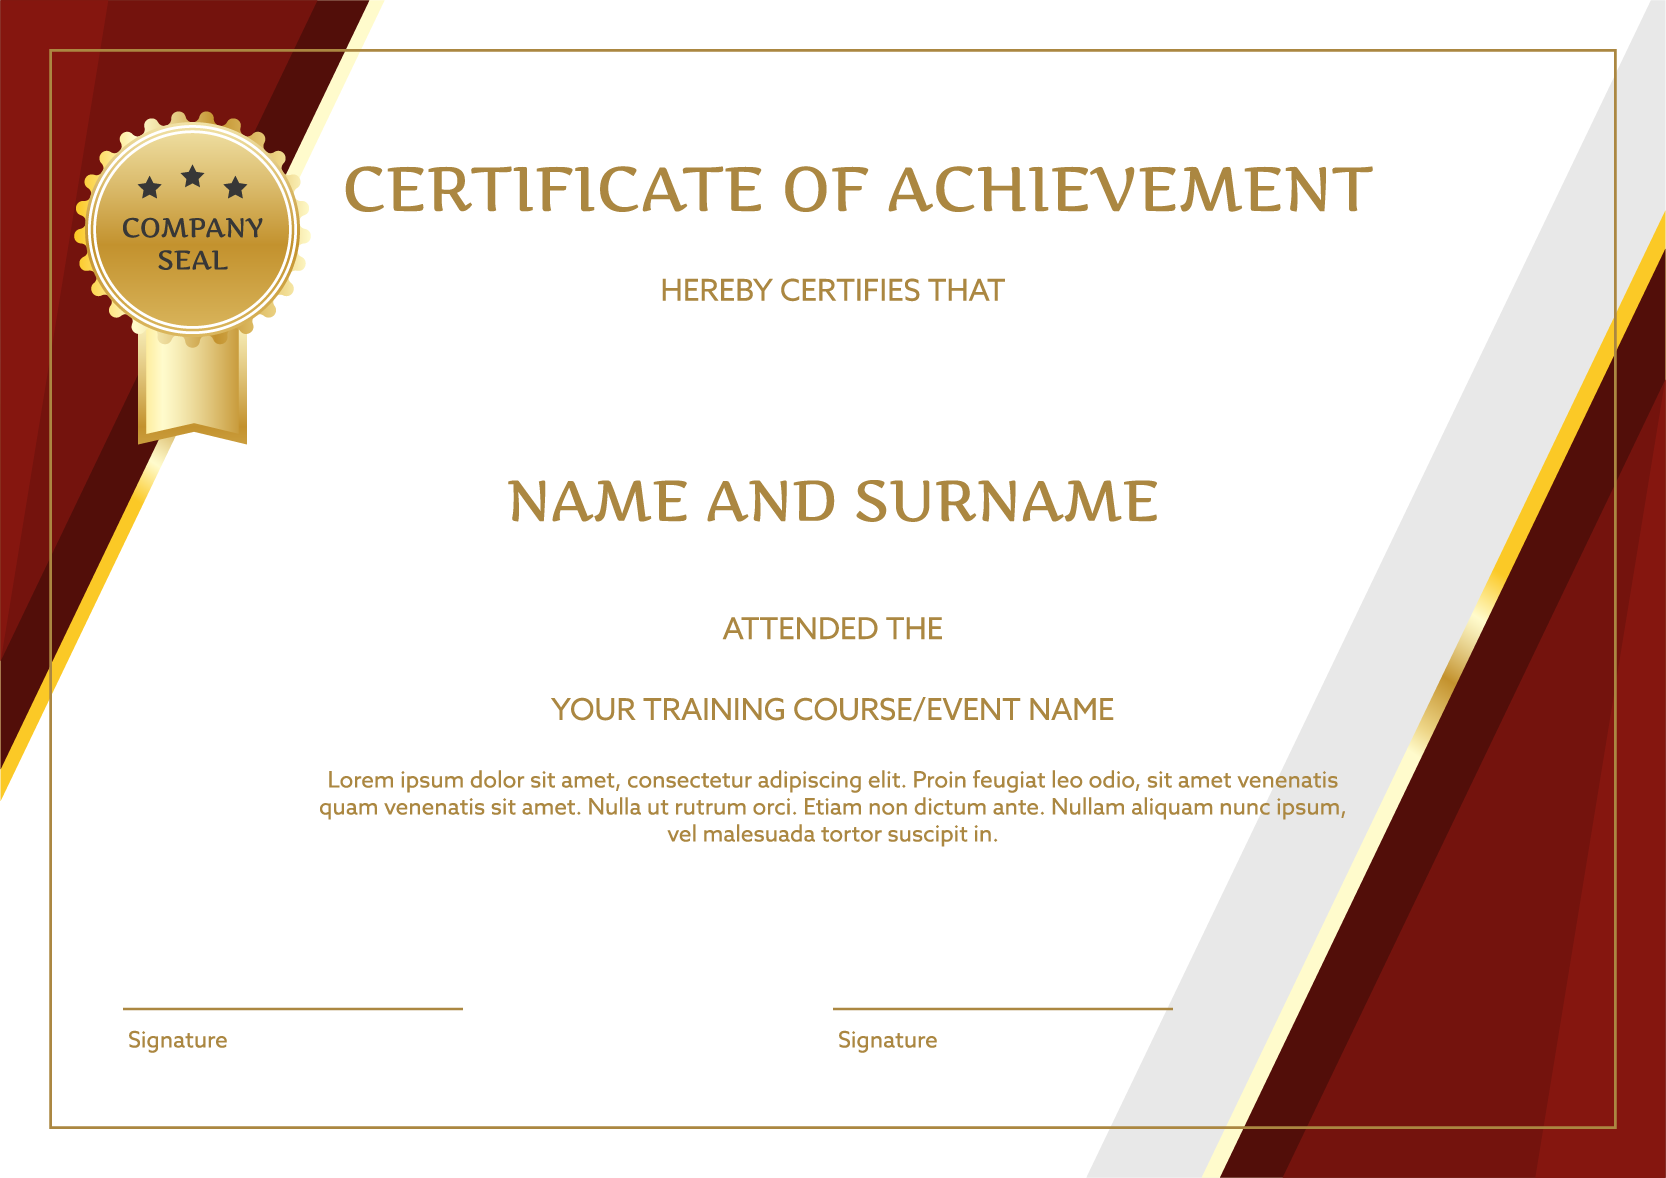 Certificate PNG Images Transparent Free Download.